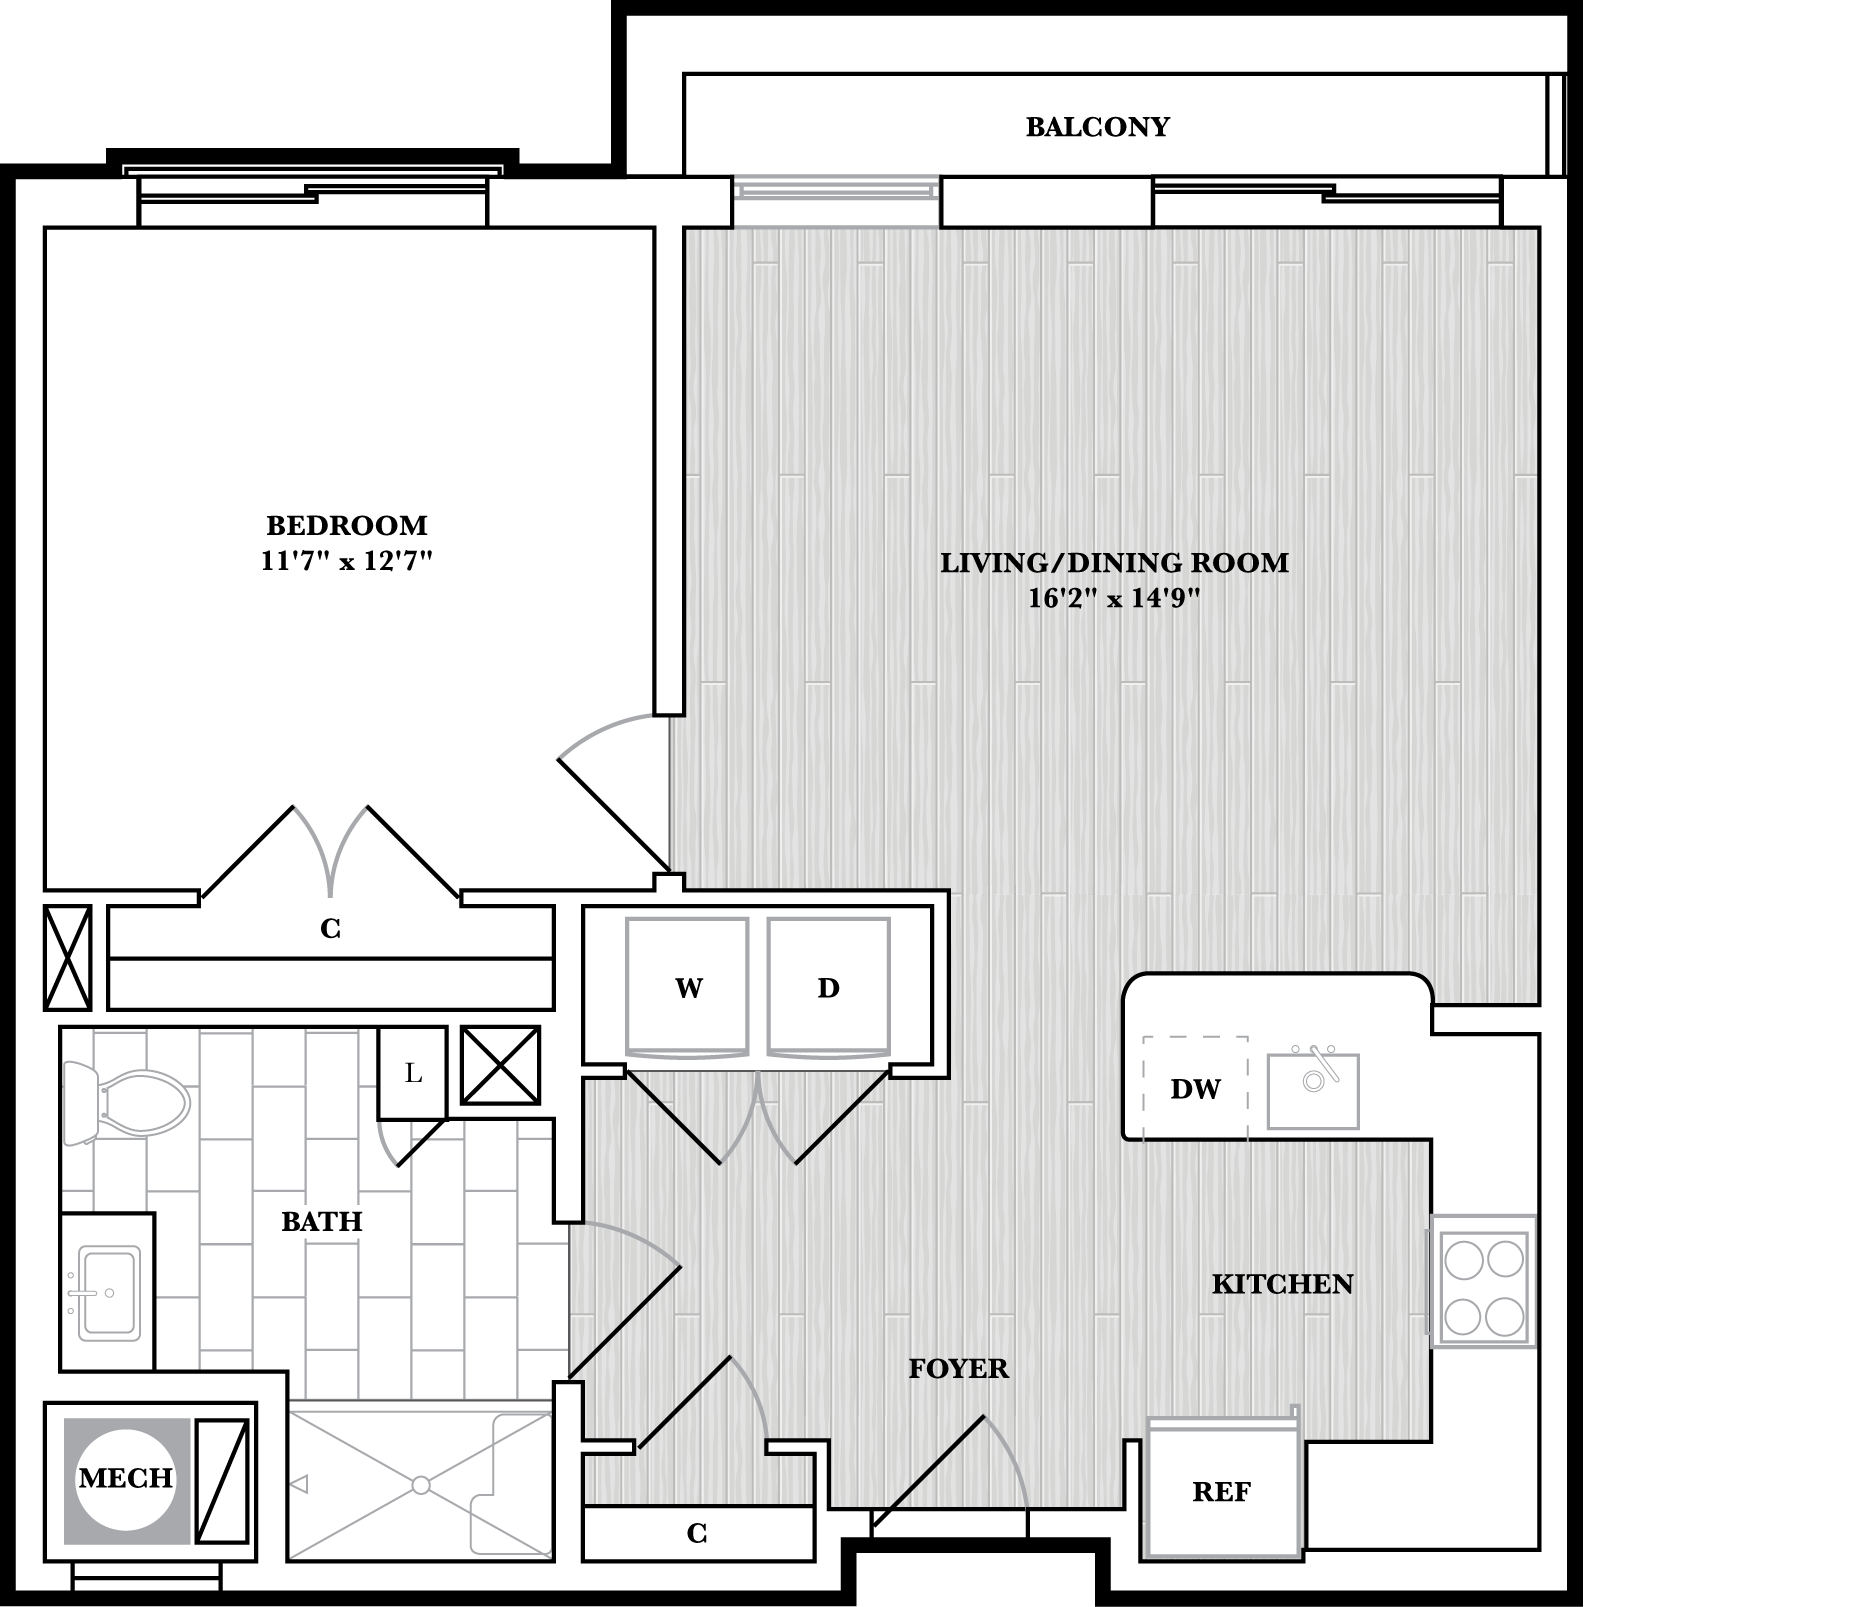 floorplan image of N507